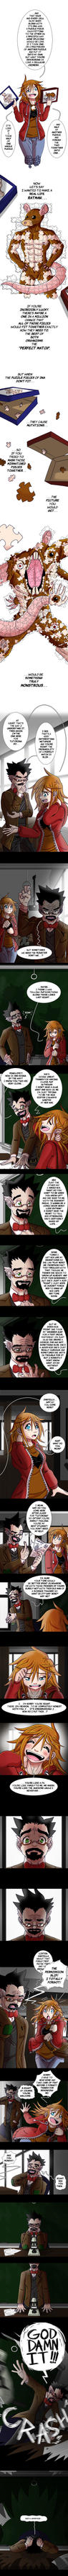 BIG BAD WOLF pg9 Making Monsters with Mr. Maera 2 by GraphicGinger